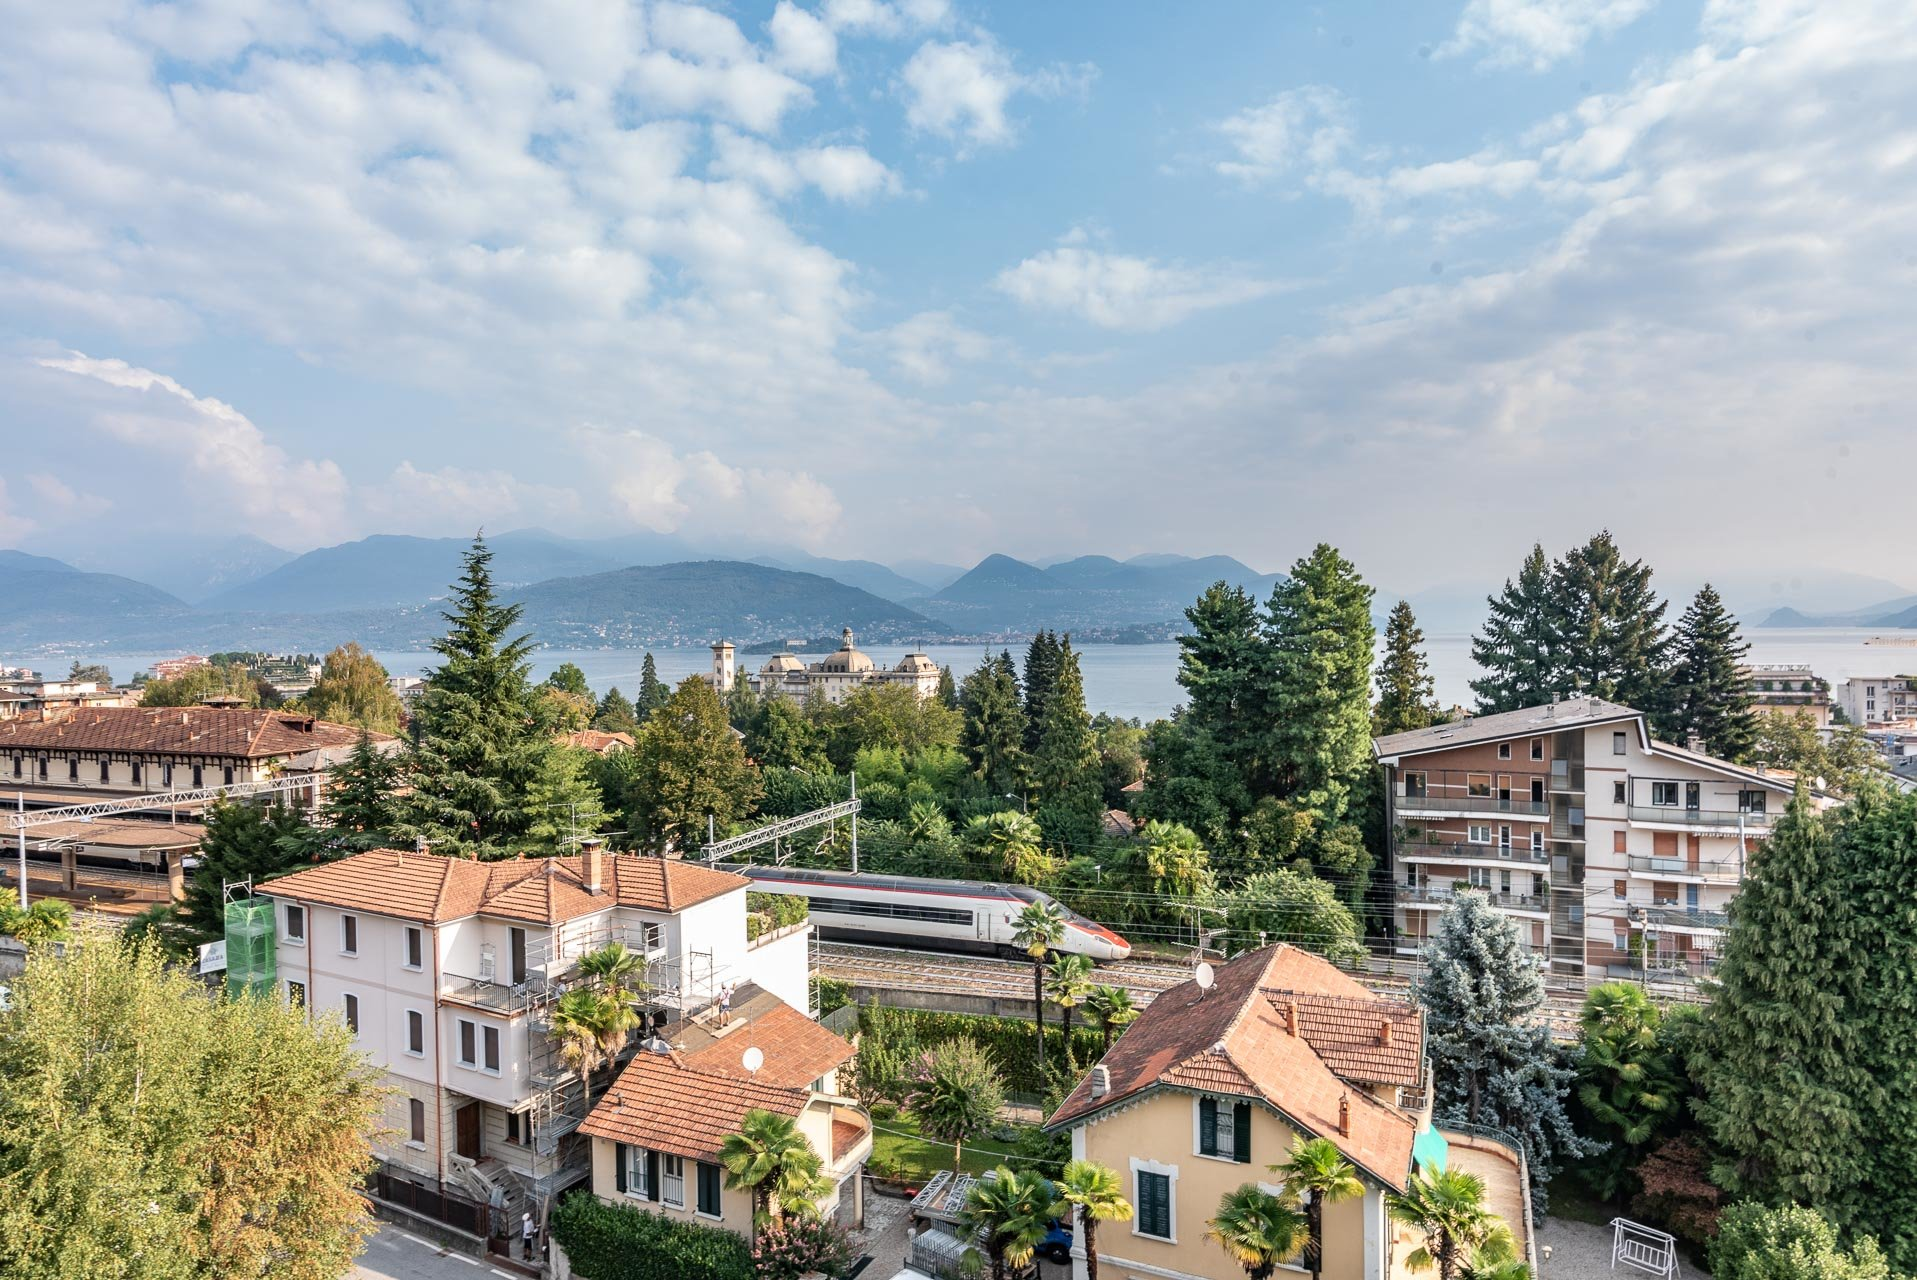 Apartment for rent in Stresa - lake view from the terrace